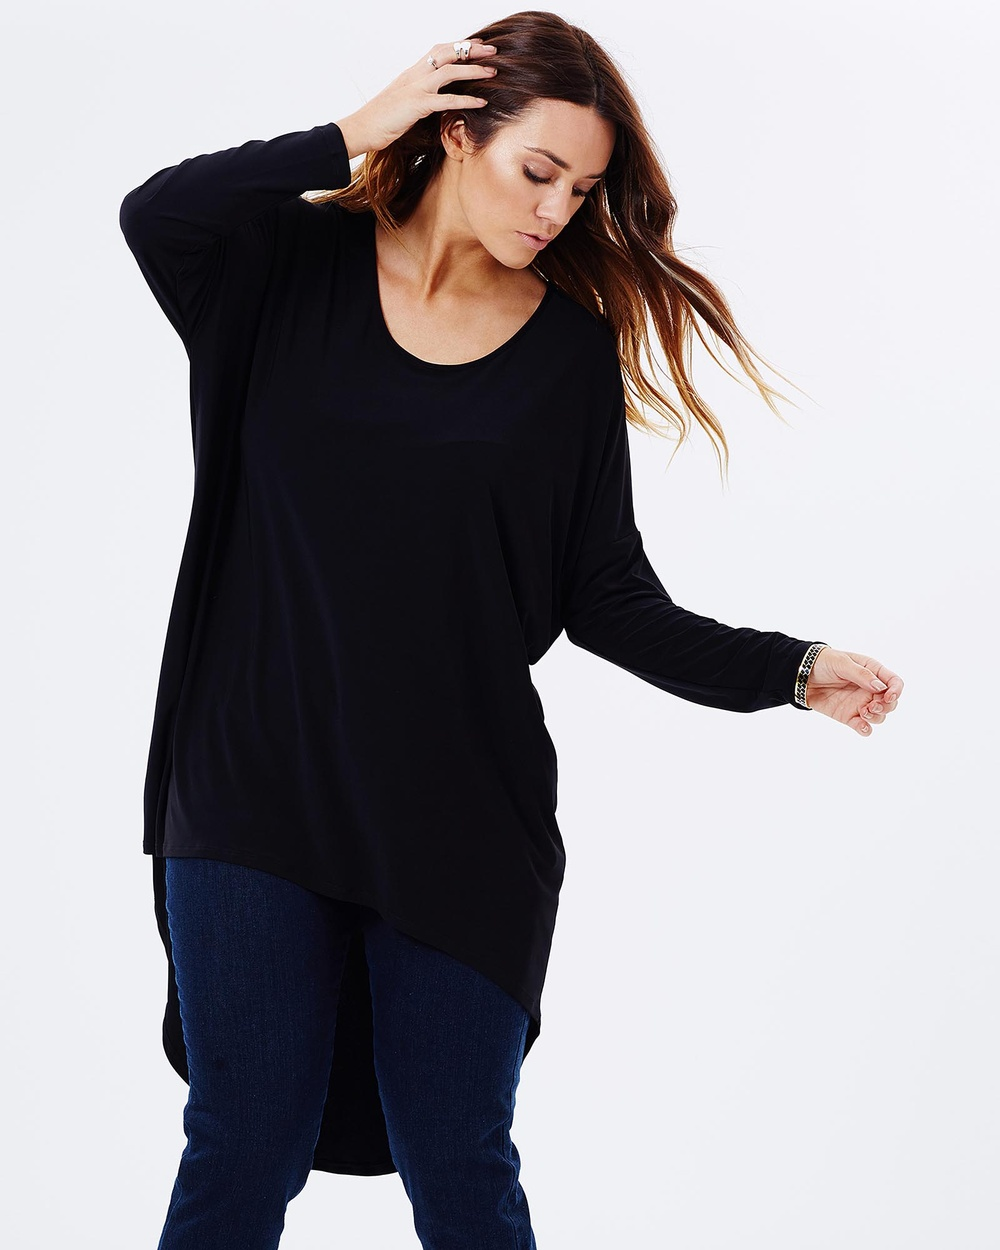 Photo of Harlow Harlow Diva Oversized Top Tops Black Diva Oversized Top - Fashioning a versatile black shade, the Harlow Diva Oversized Top has a relaxed design with full coverage. Wear yours with all your favourite separates. Our model is wearing a size extra small dress. She is a size AU14, and is 5'10 (177cm) tall. - Length: Front: 75cm Back: 110cm - Relaxed fit - Stretch-polyester lightweight jersey - Black shade - Round neckline - 3/4 sleeves - Dipped hemli